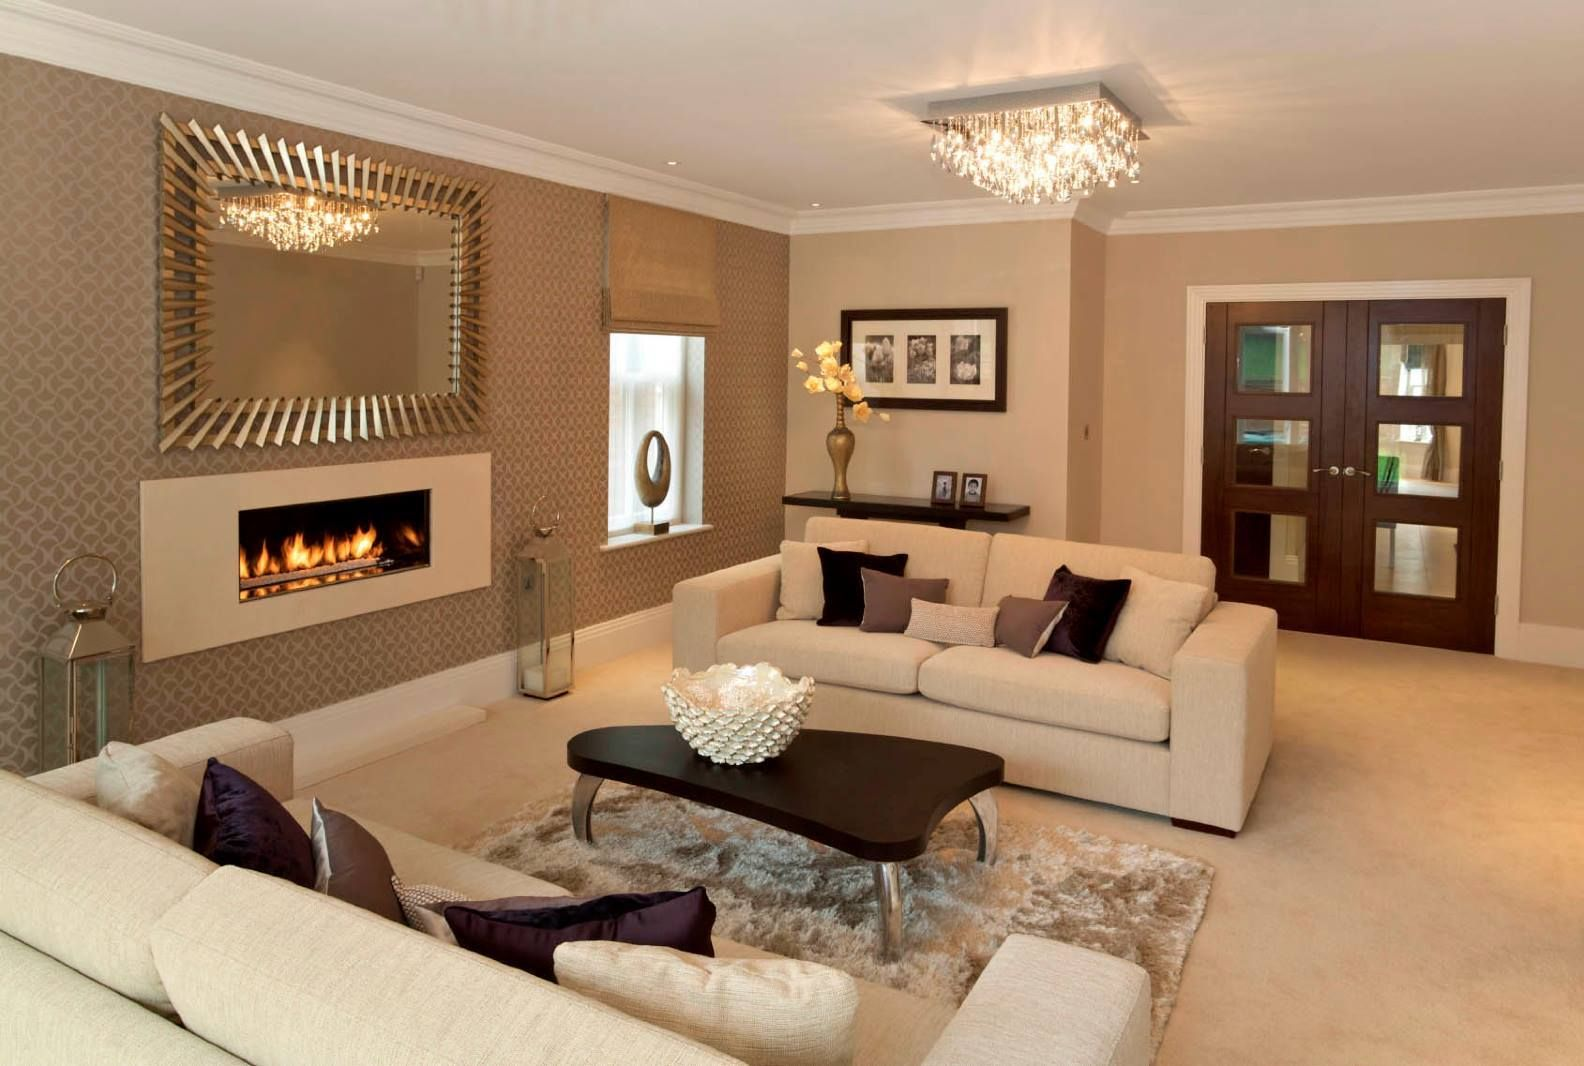 Pin by jasmin farag on home design ideas in pinterest house